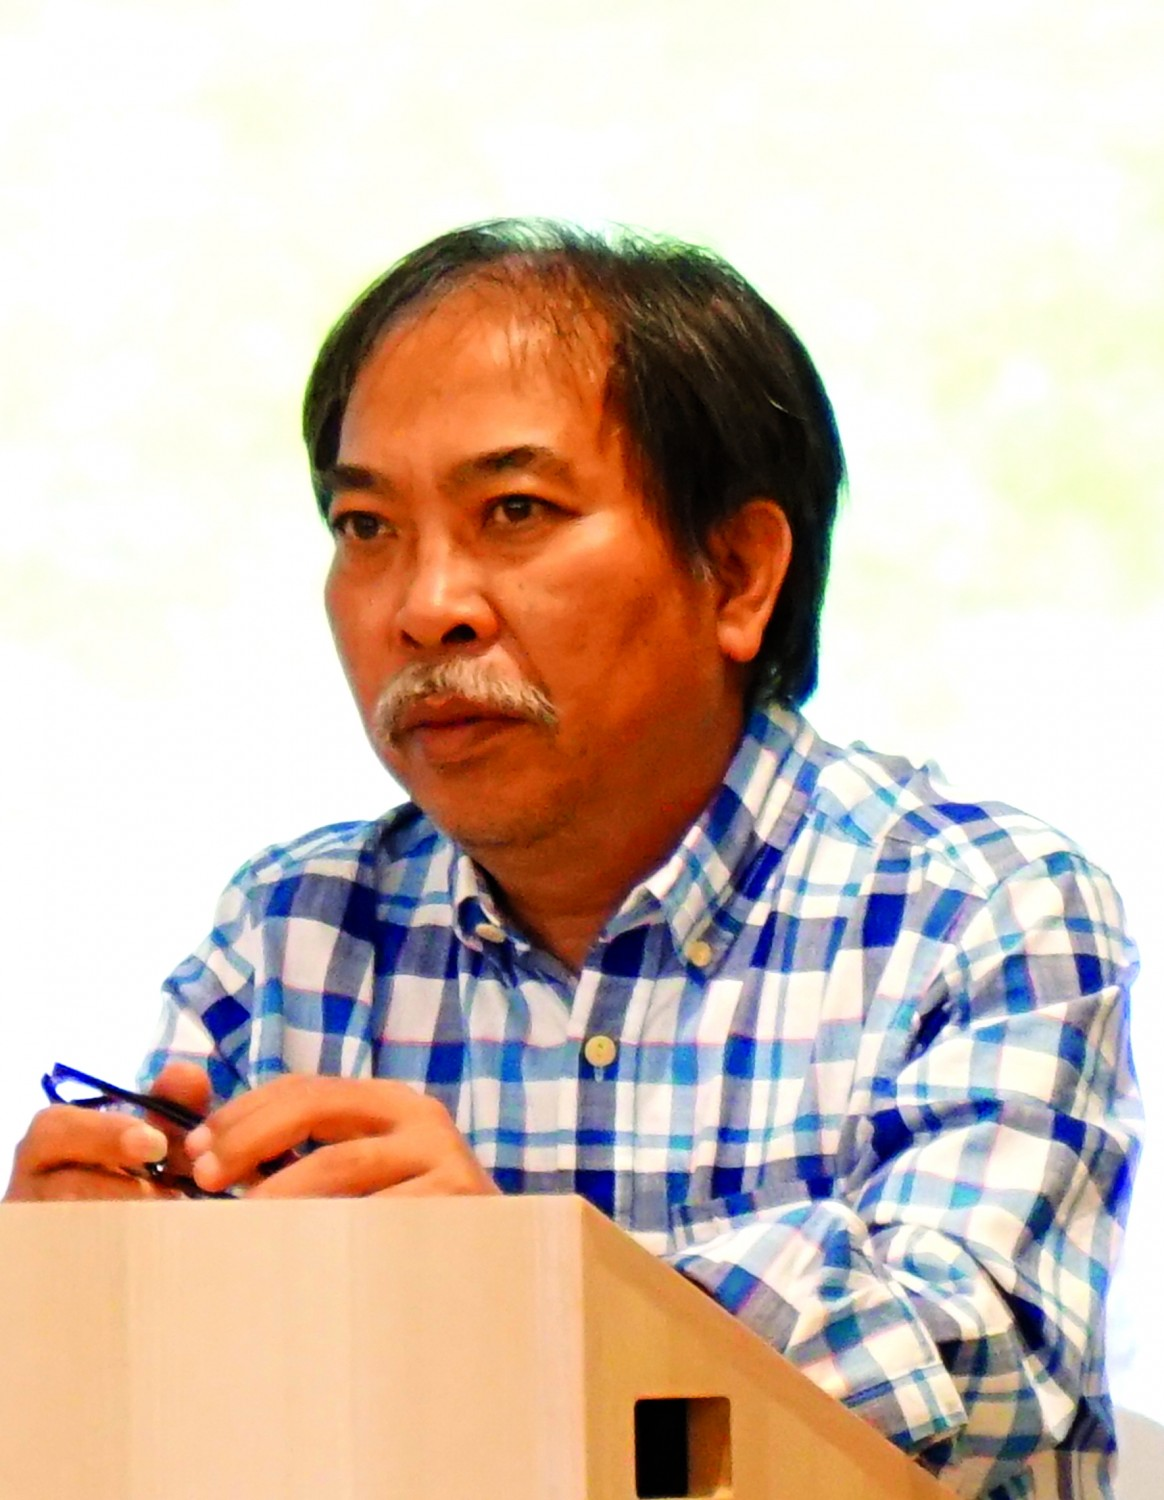 Poet Nguyen Quang Thieu: There should be a national strategy for promoting Vietnamese literature